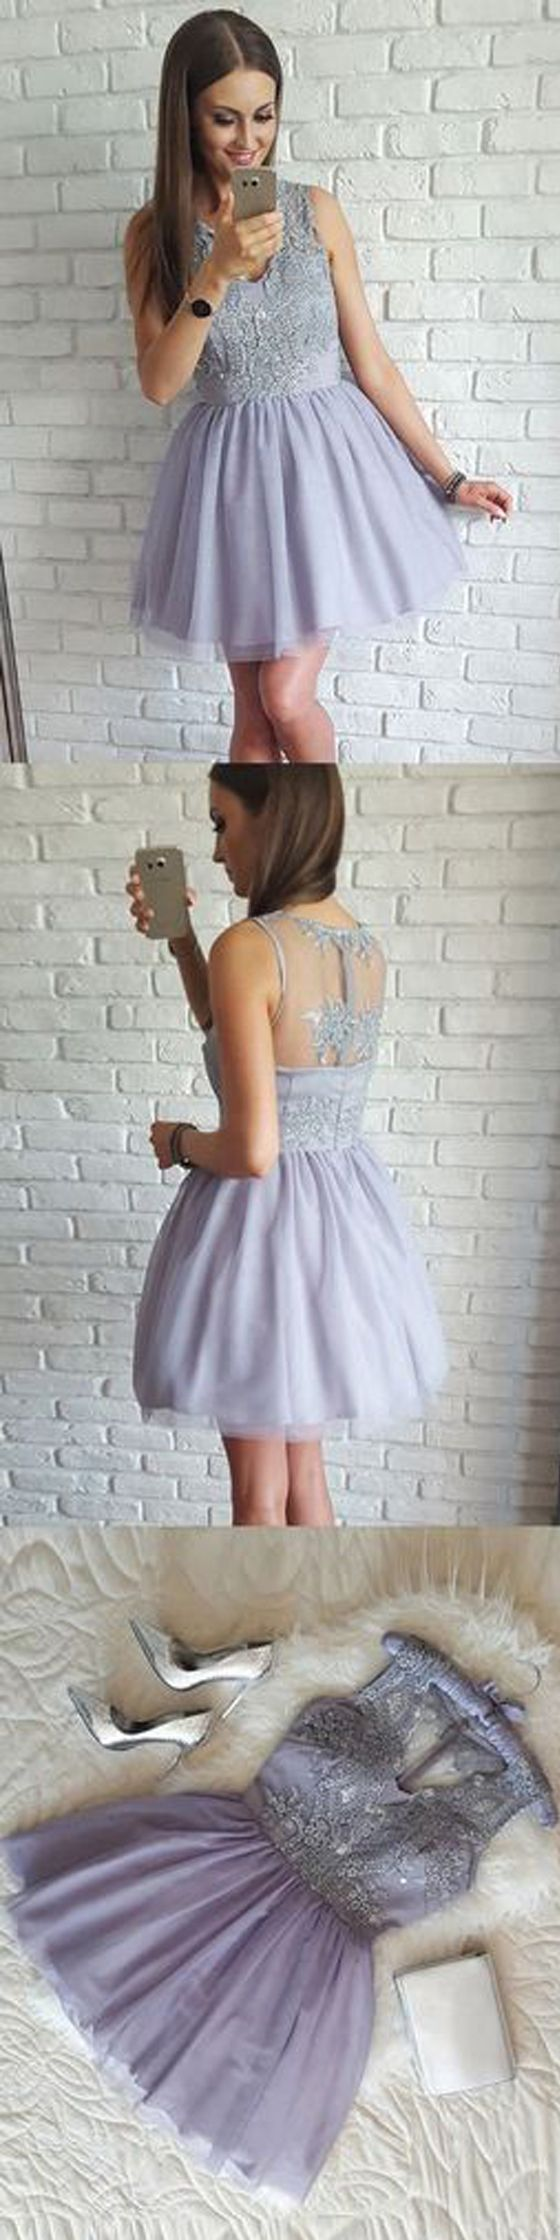 Cheap Lovely Lavender Junior Graduation School Short Homecoming Dresses, BG51631 #homecomingdress #homecoming